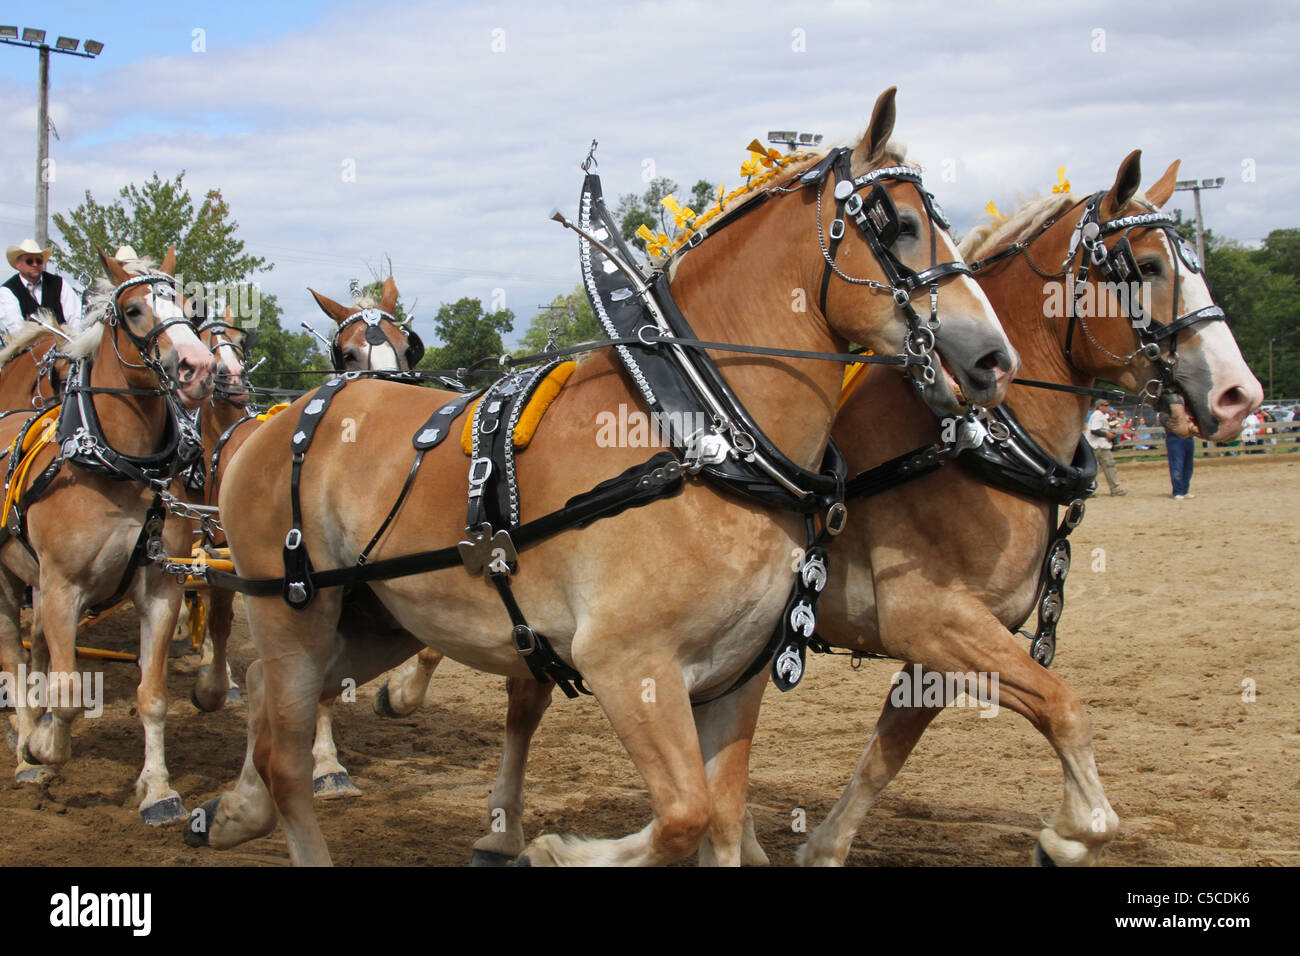 Workhorses With Harnesses Draft Horses Pulling A Wagon